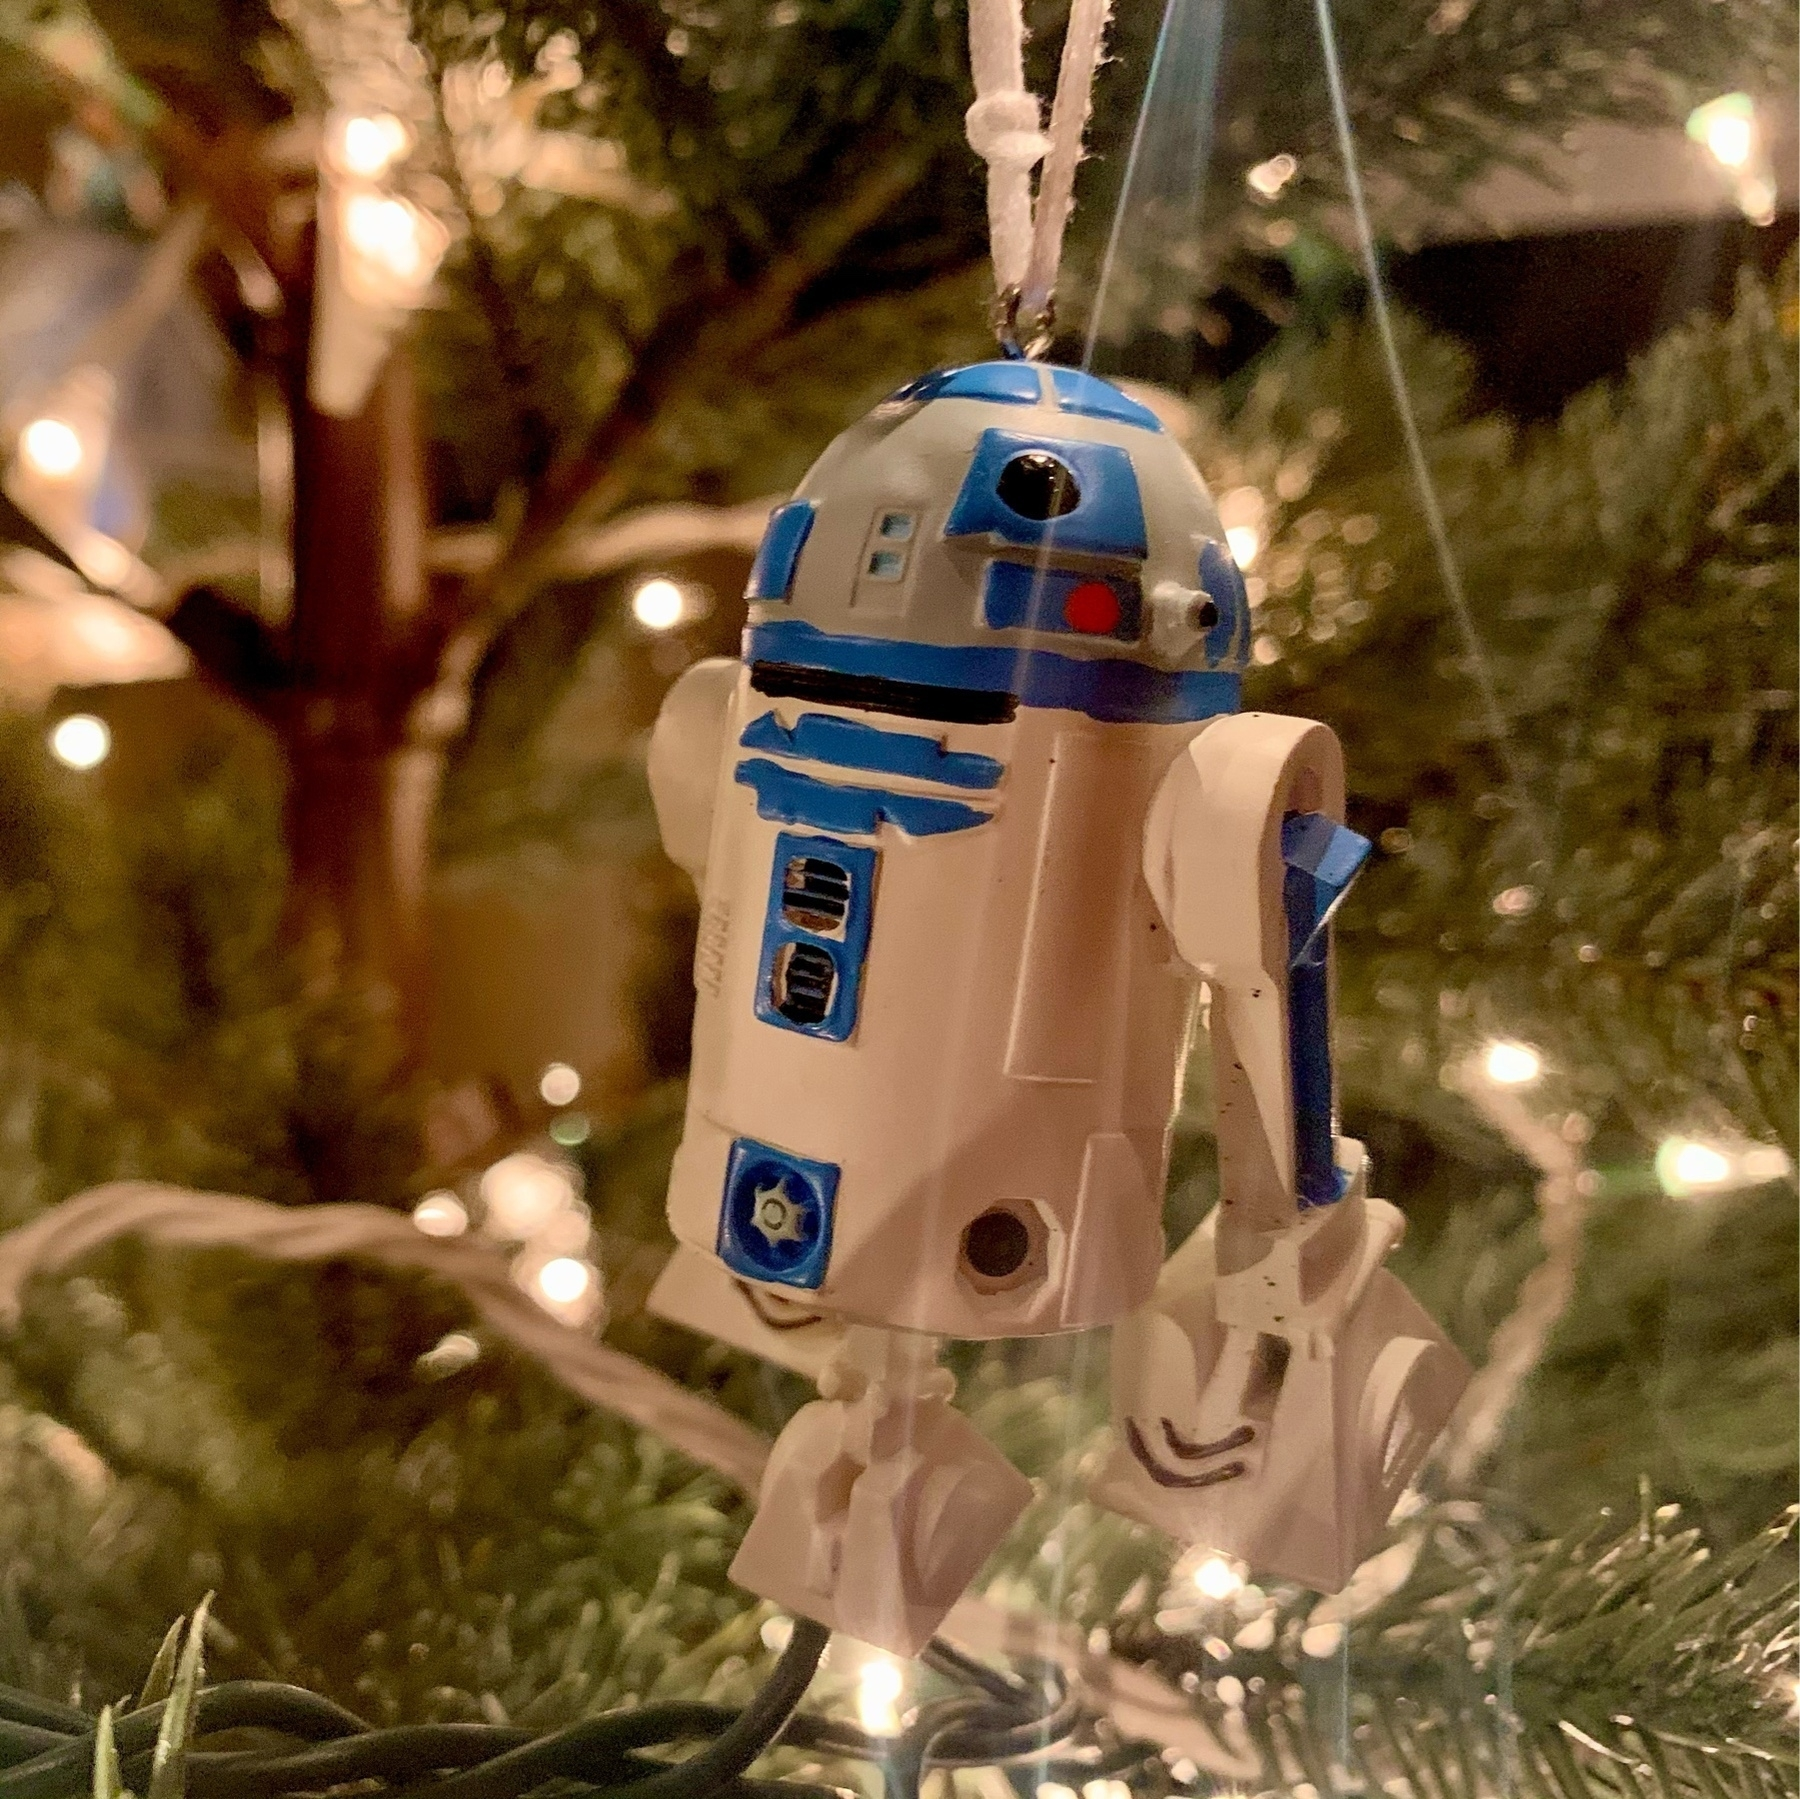 R2-D2 christmas ornament hung on tree